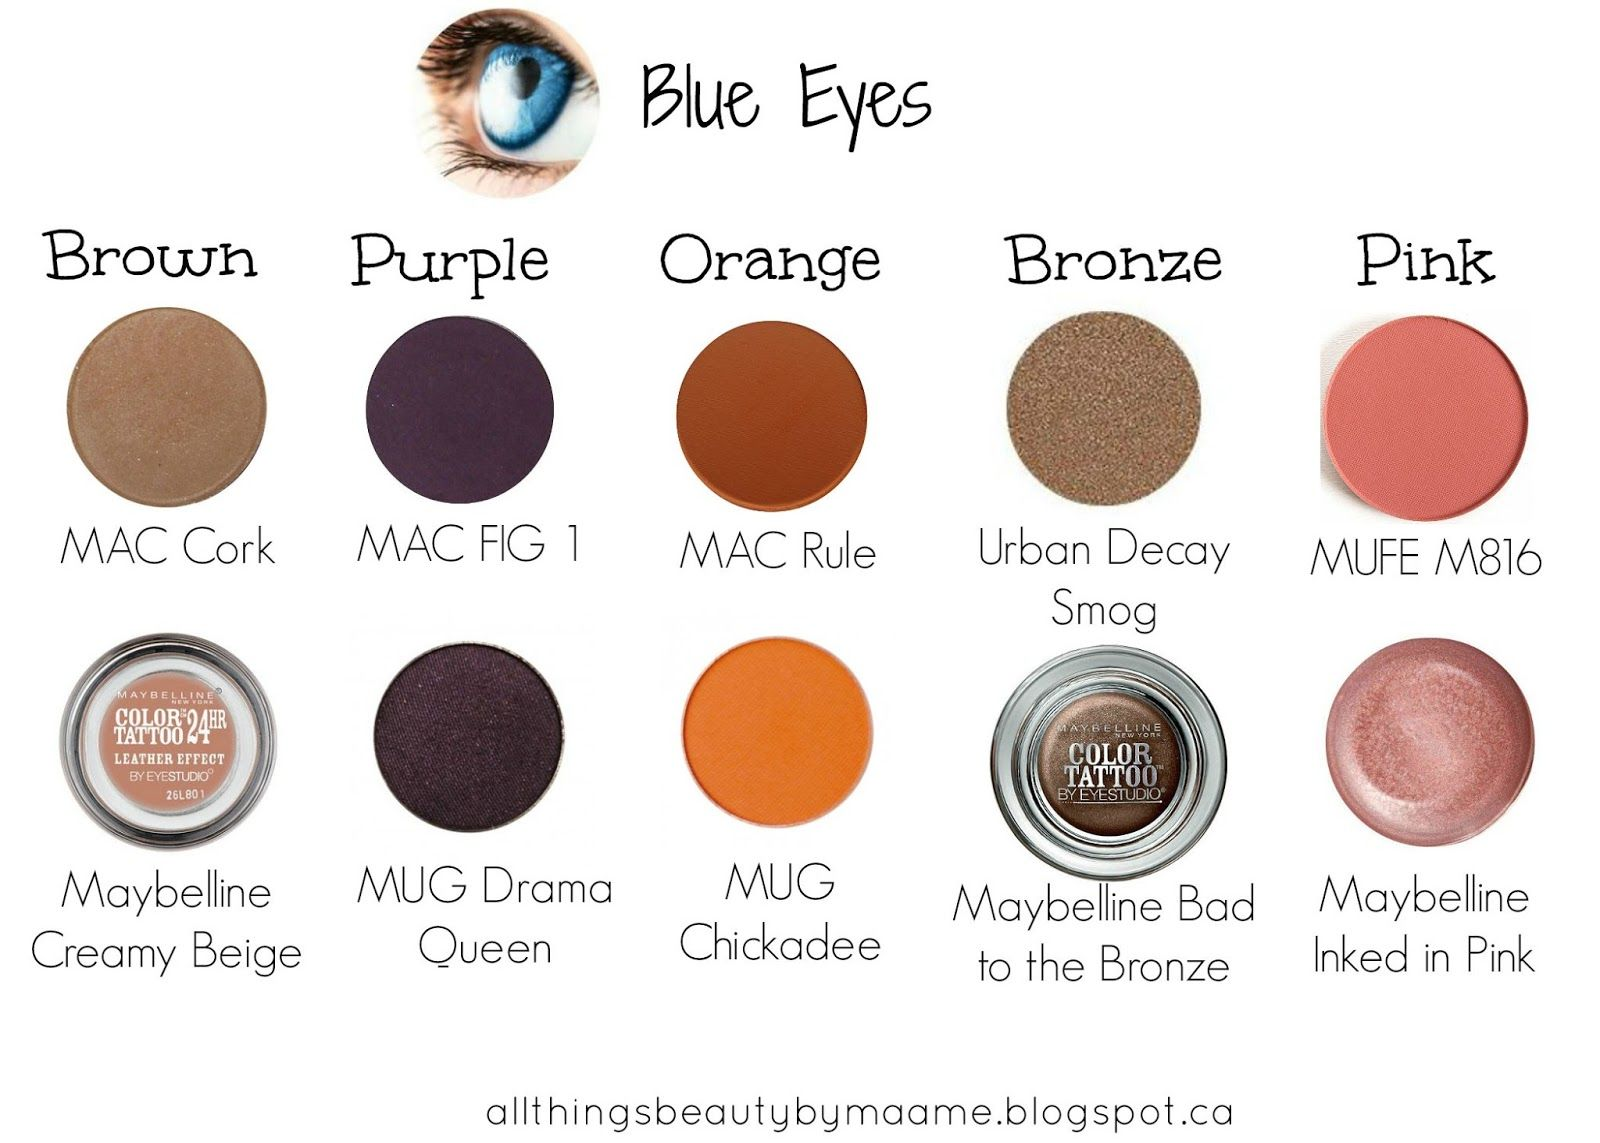 hello dolls and gents, what is your eye colour? do you have brown